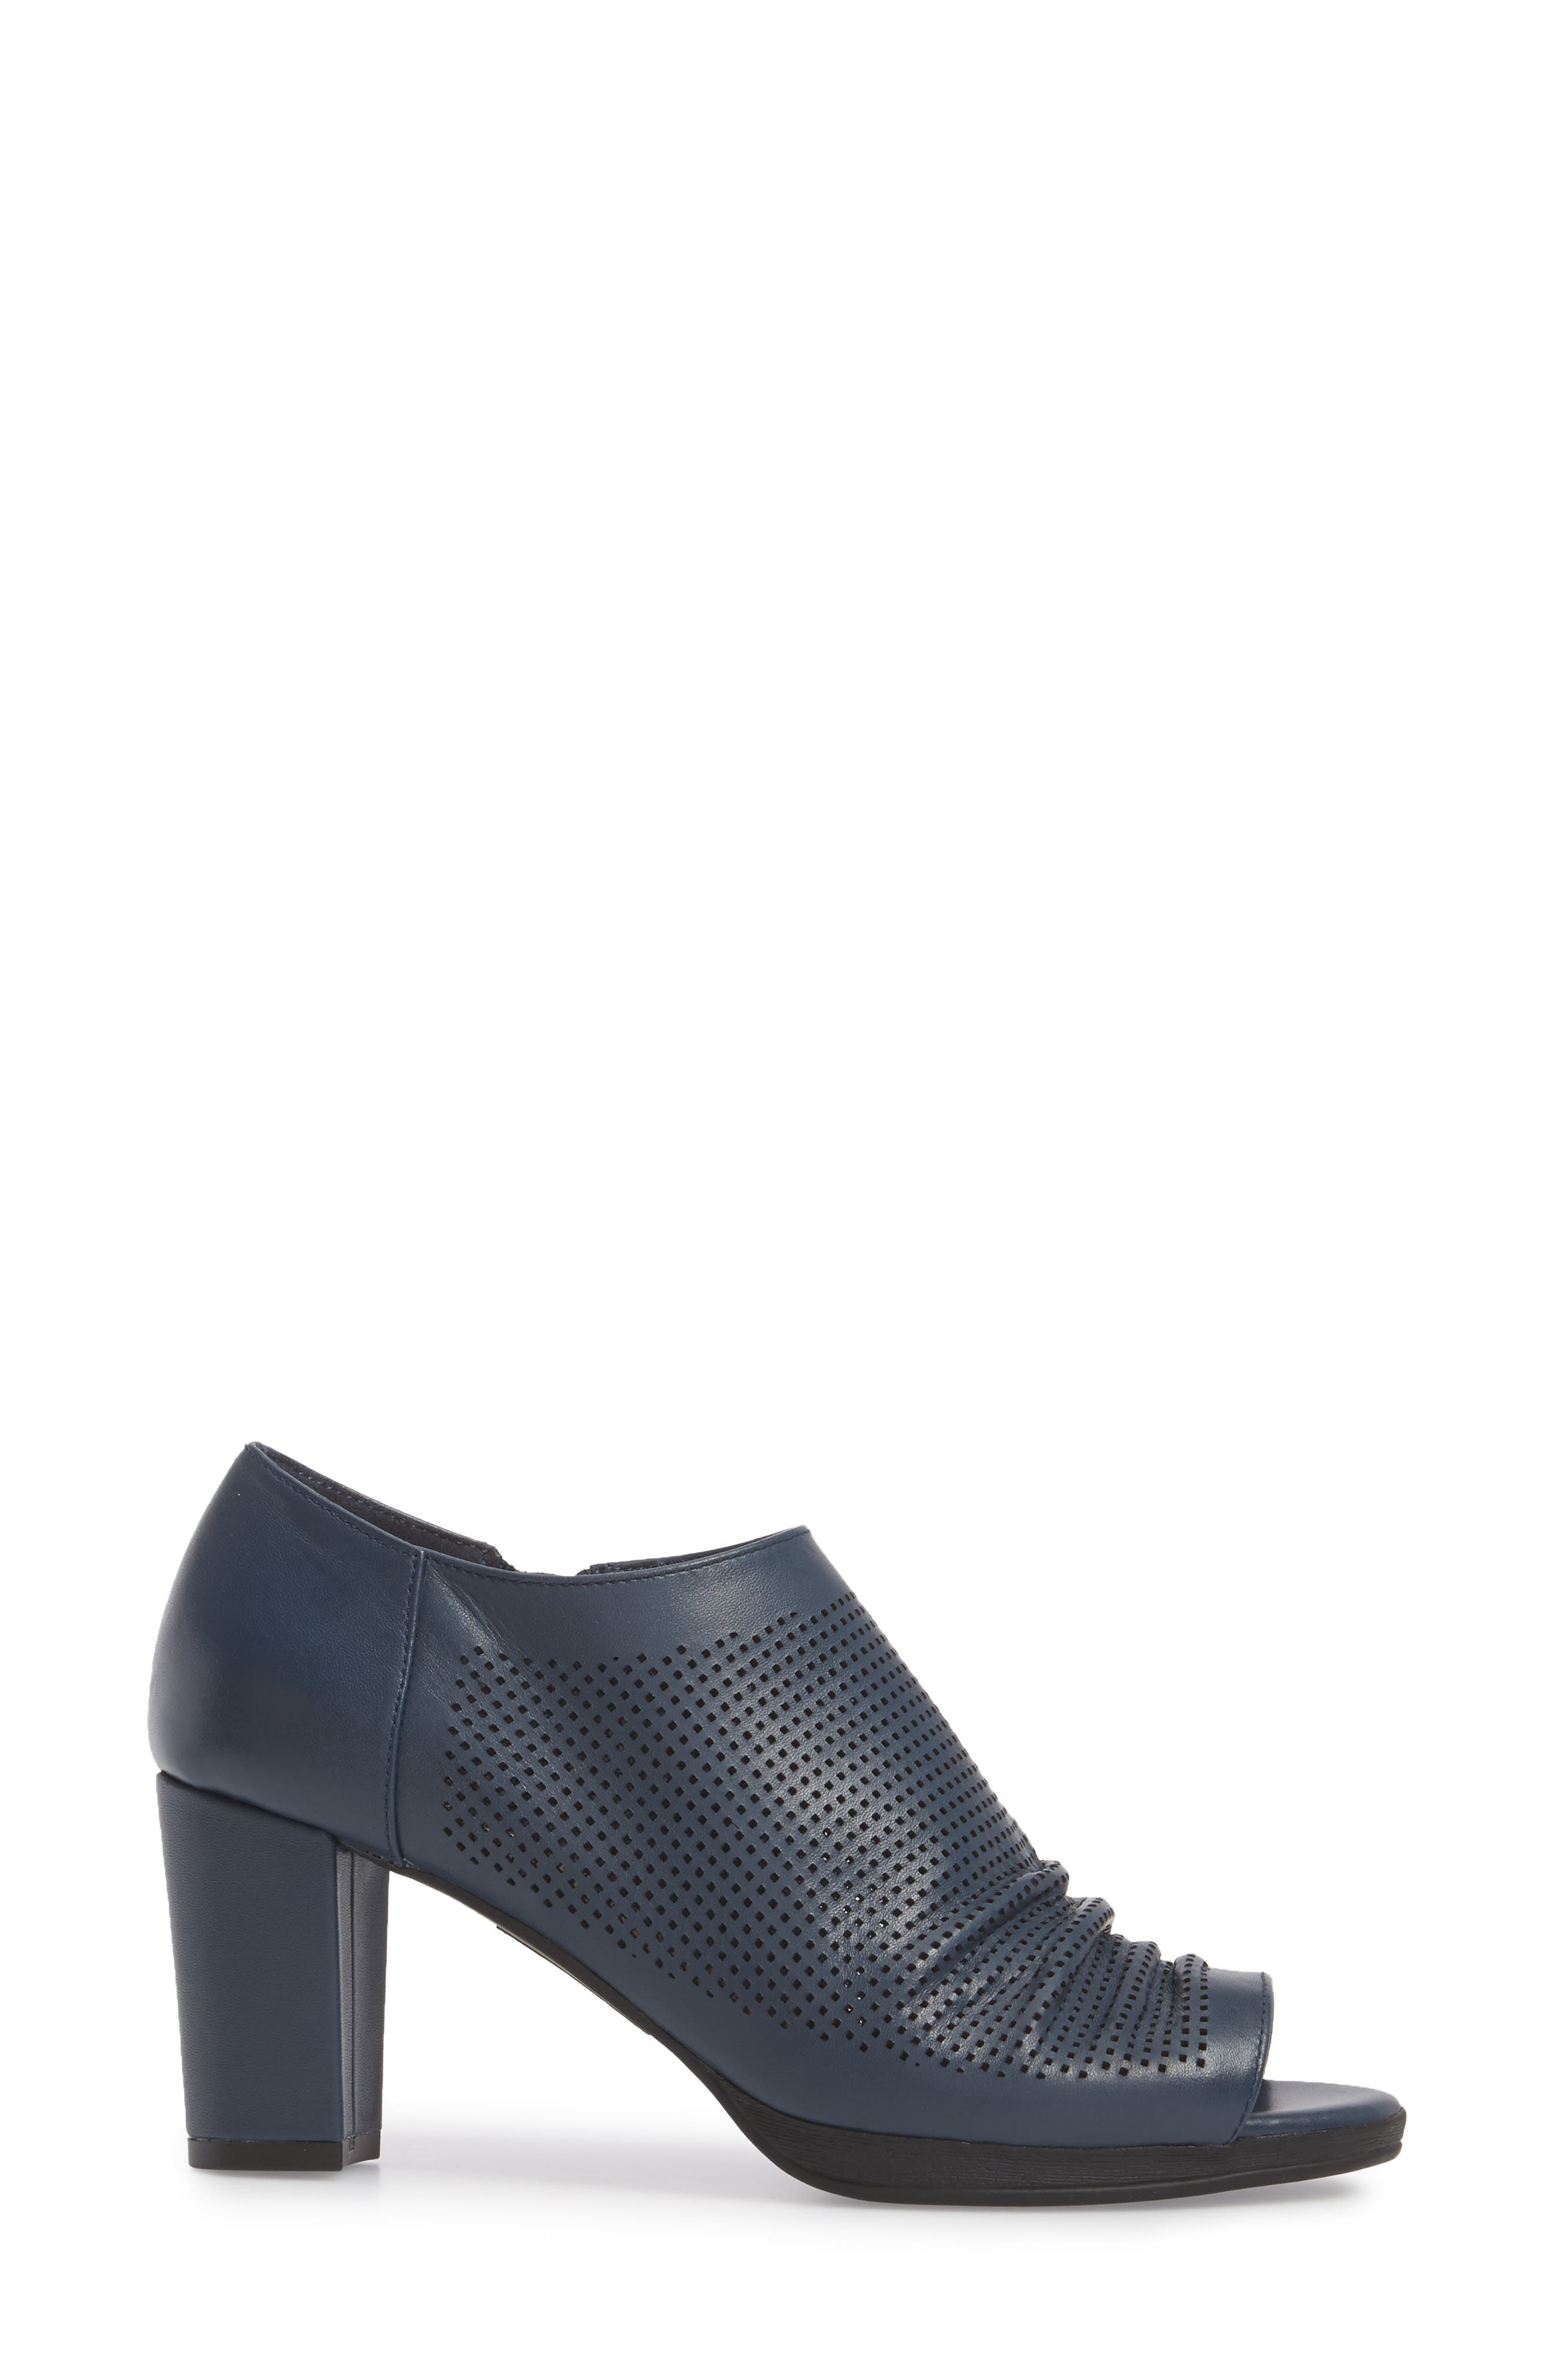 Liza Open Toe Bootie,                             Alternate thumbnail 3, color,                             Navy Leather